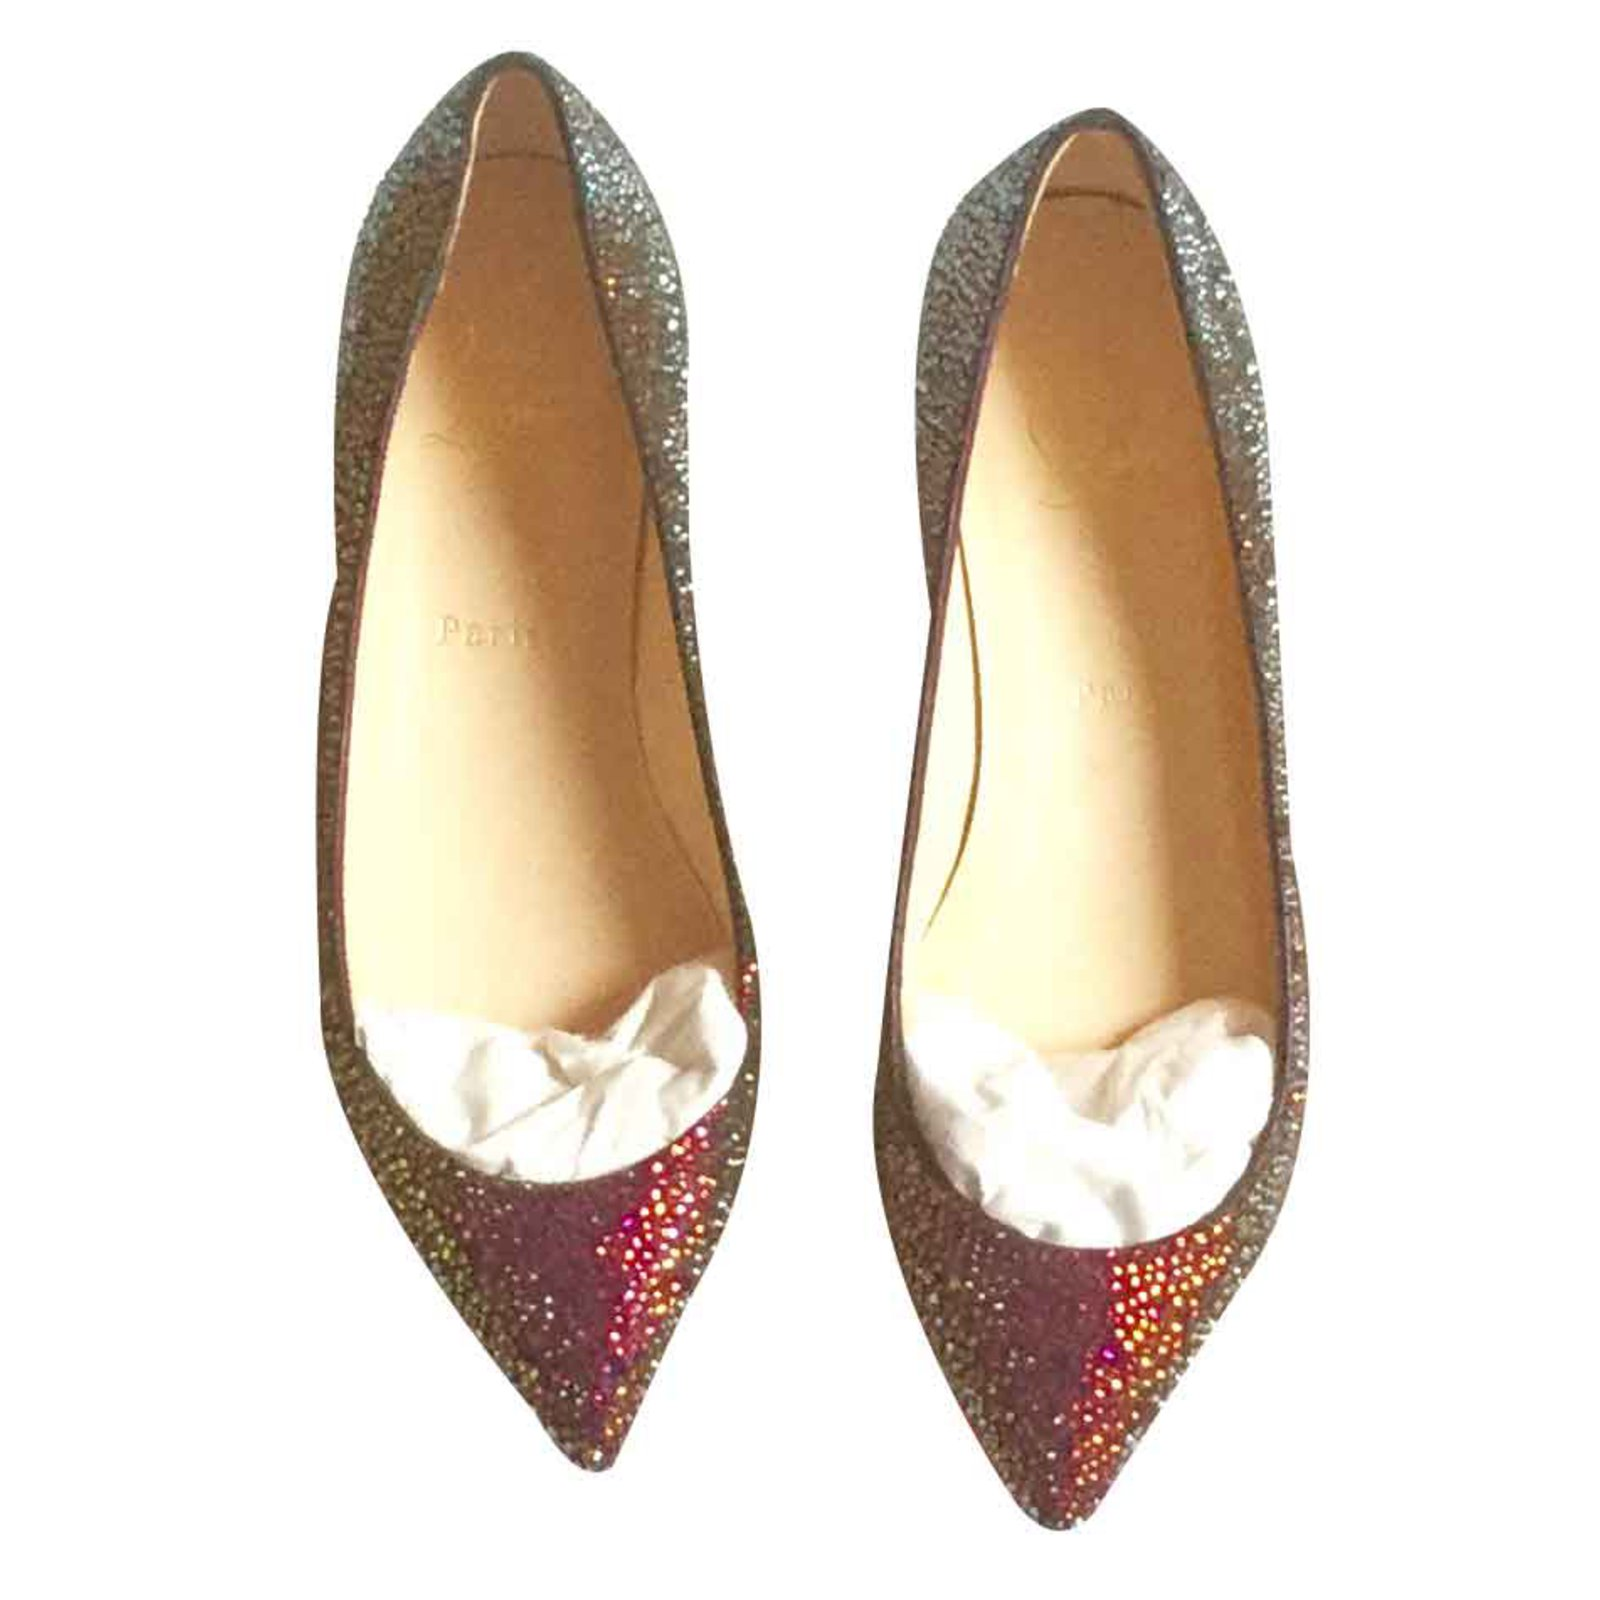 new product 369d1 eef83 Flats Vulcano Strass Crystal Gold